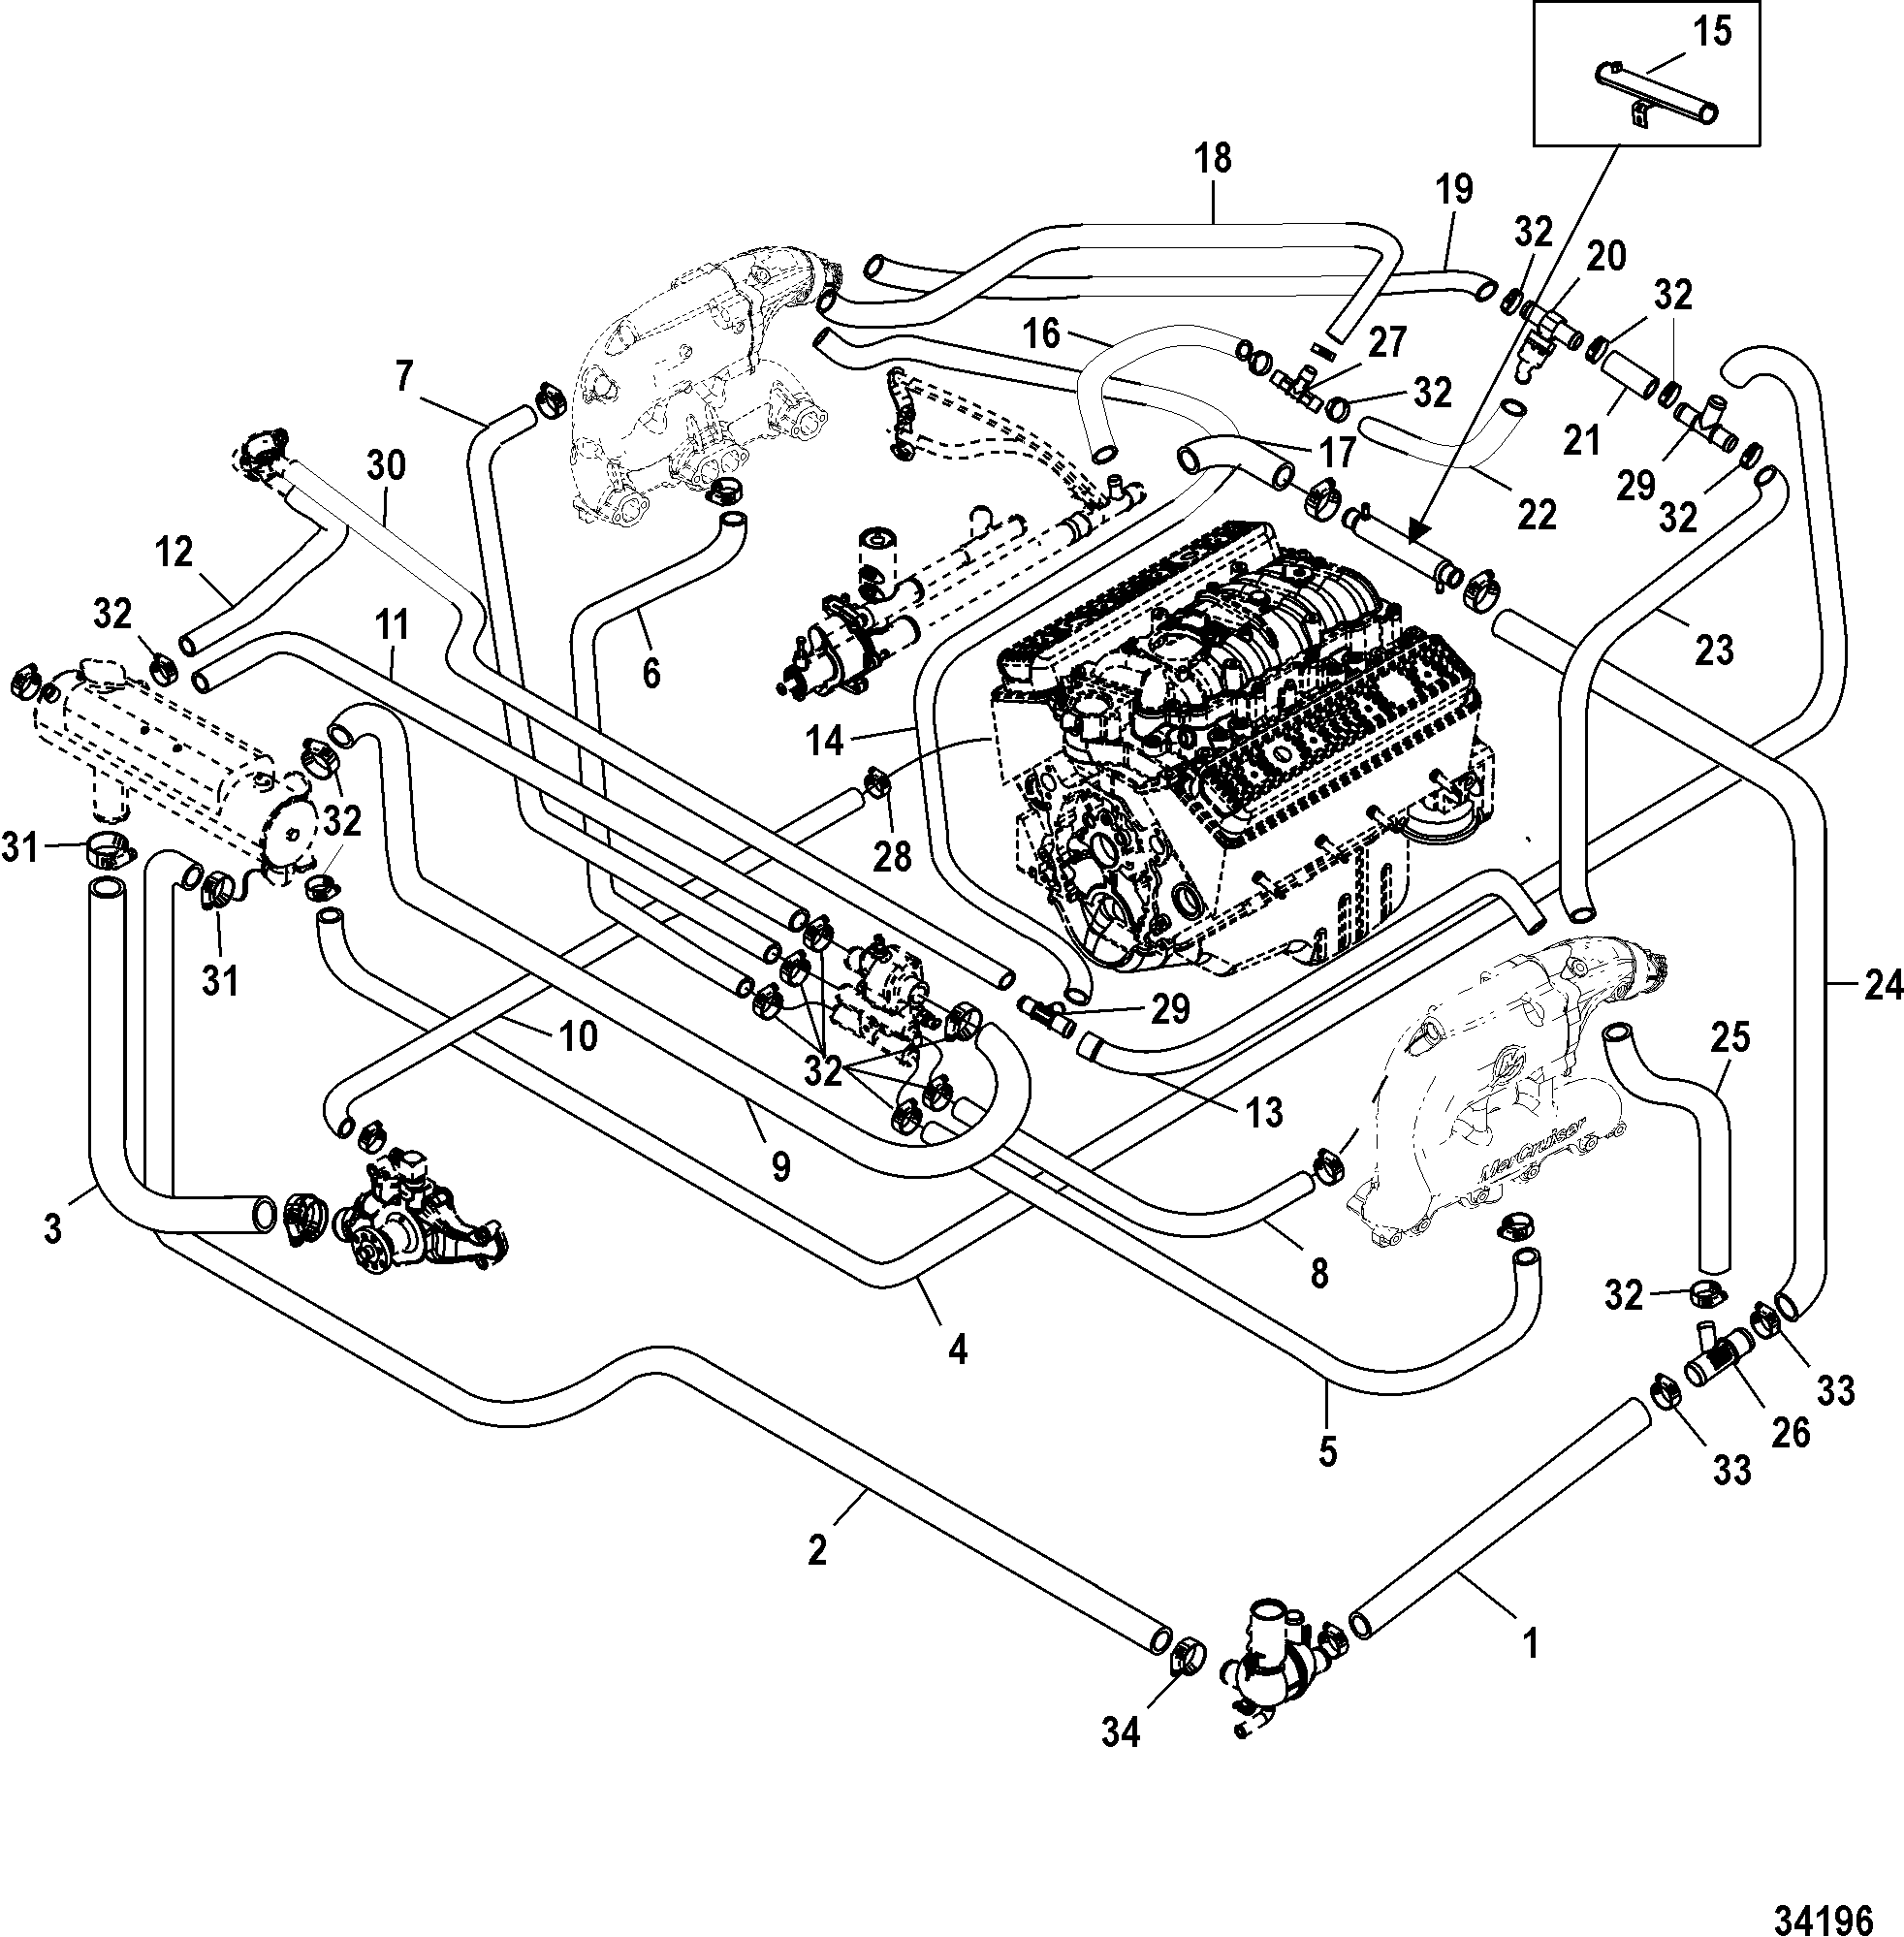 Chevy 350 Coolant Flow Diagram